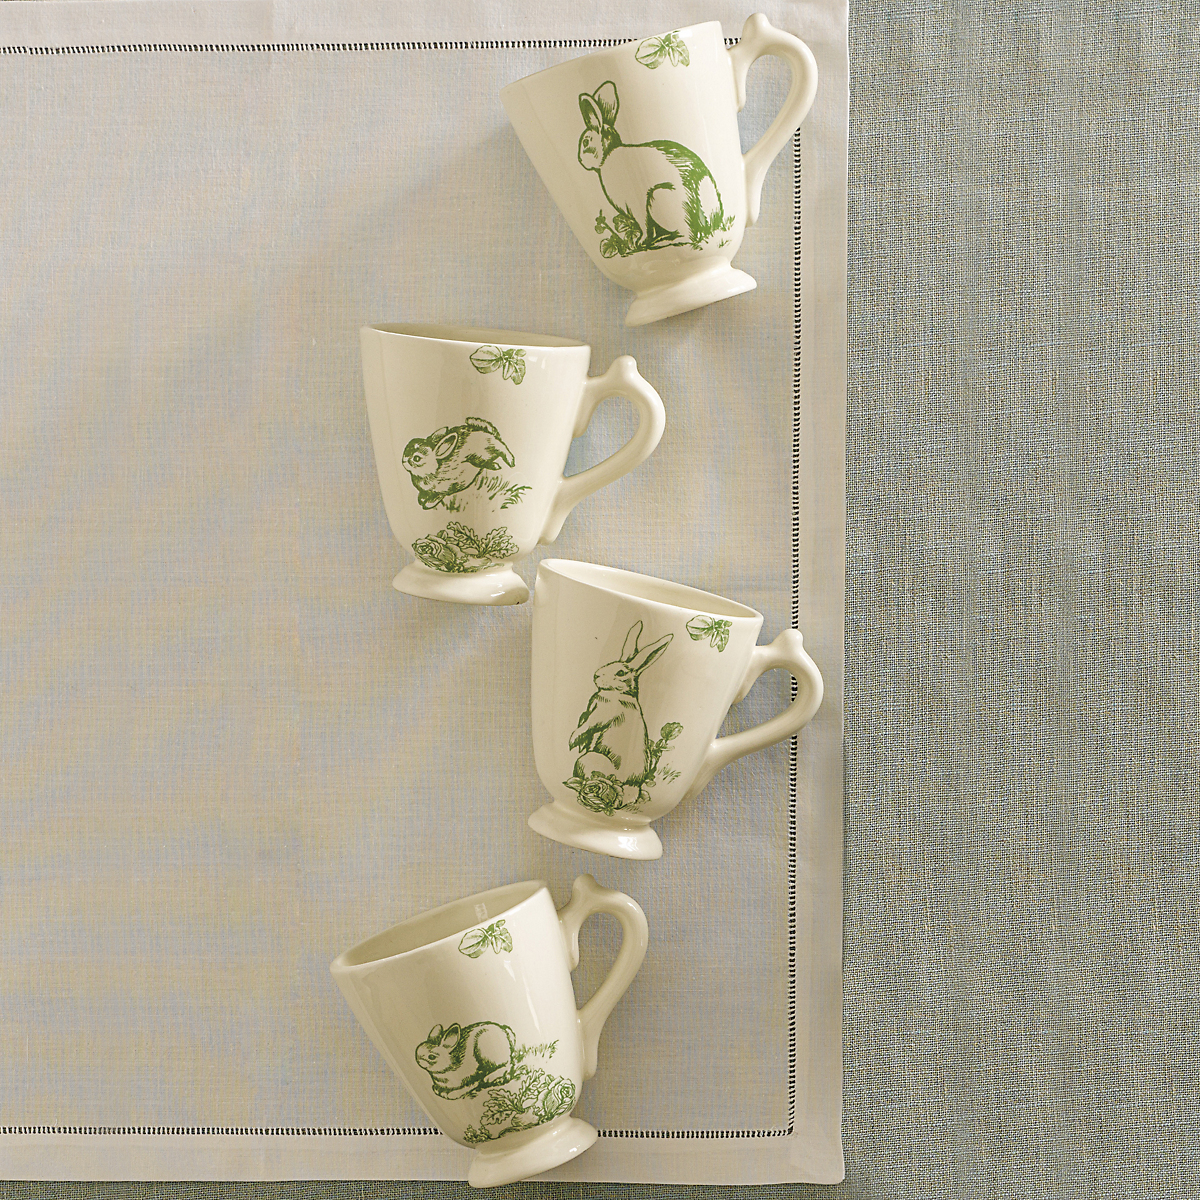 Garden Rabbit Mugs, Set of 4